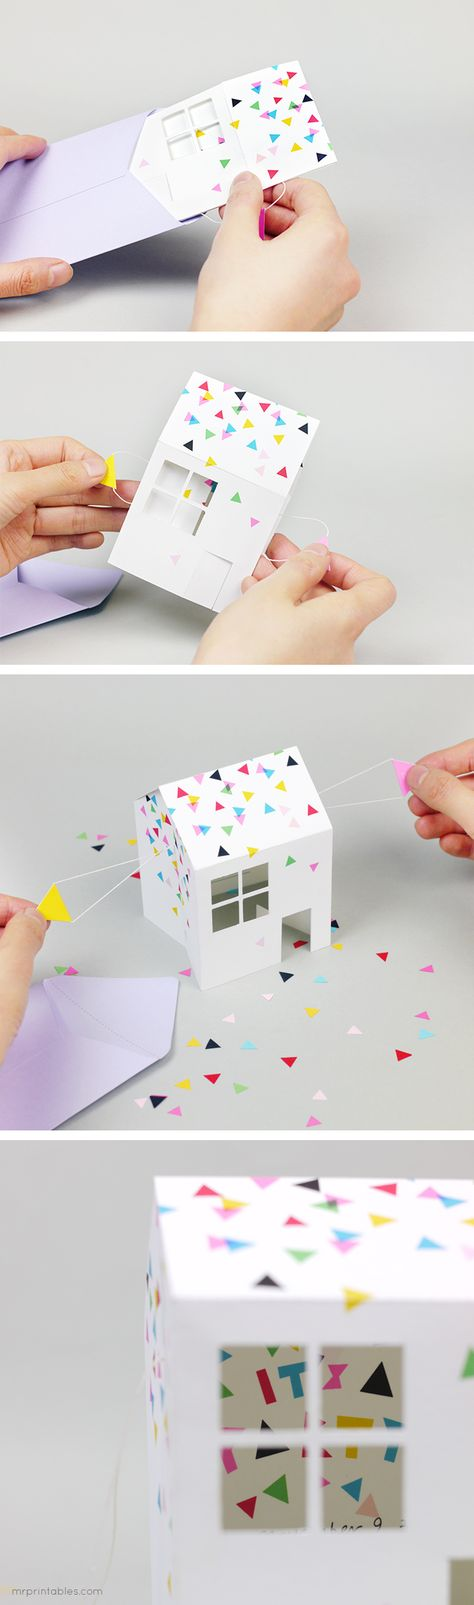 Free printable pop-up house party invitation